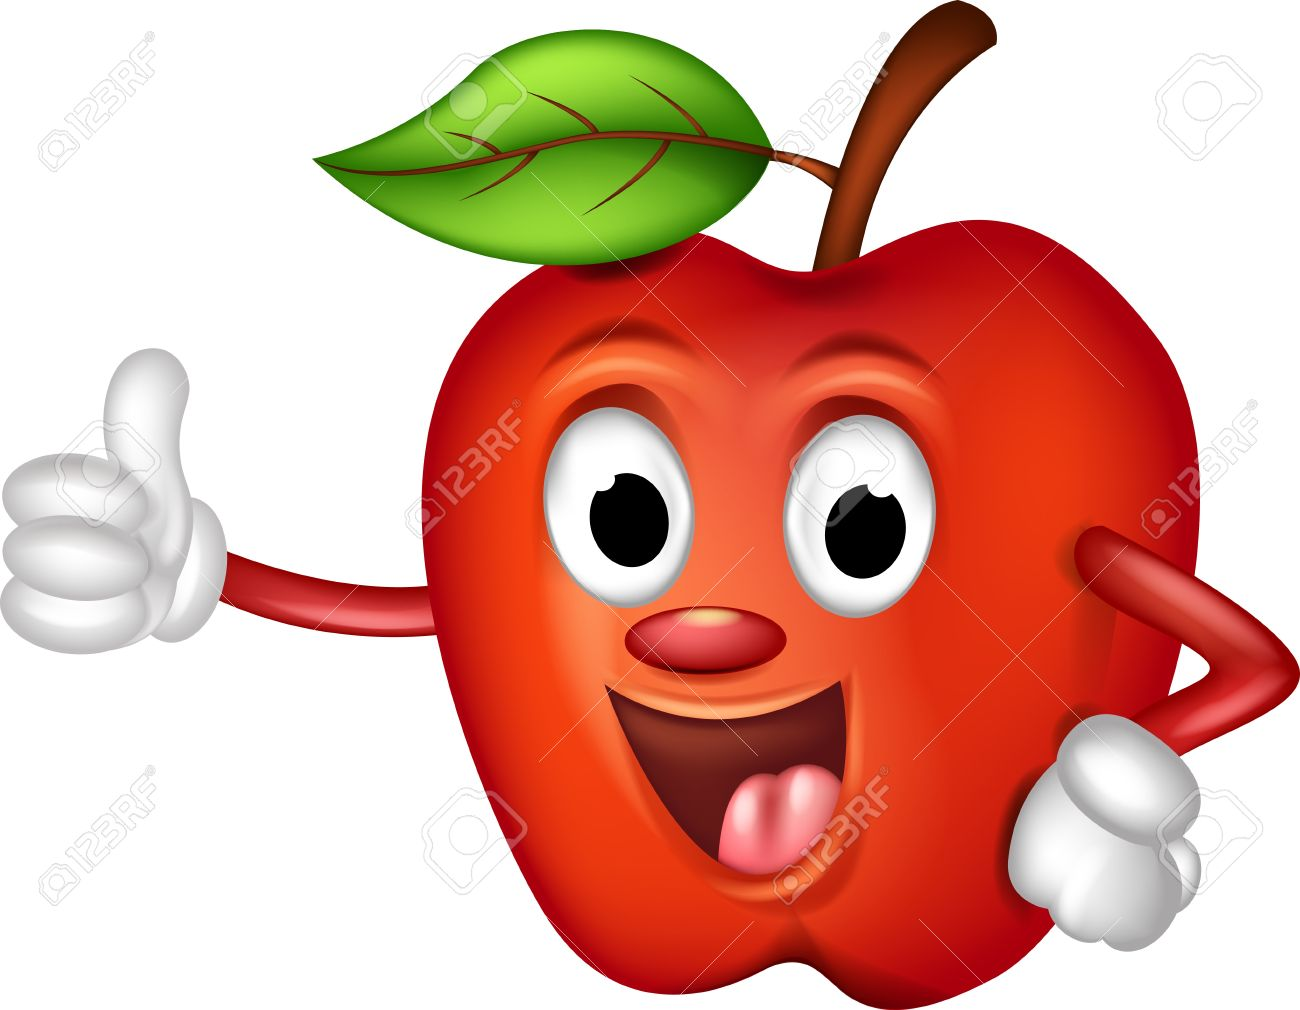 Smiling Apple Clipart.